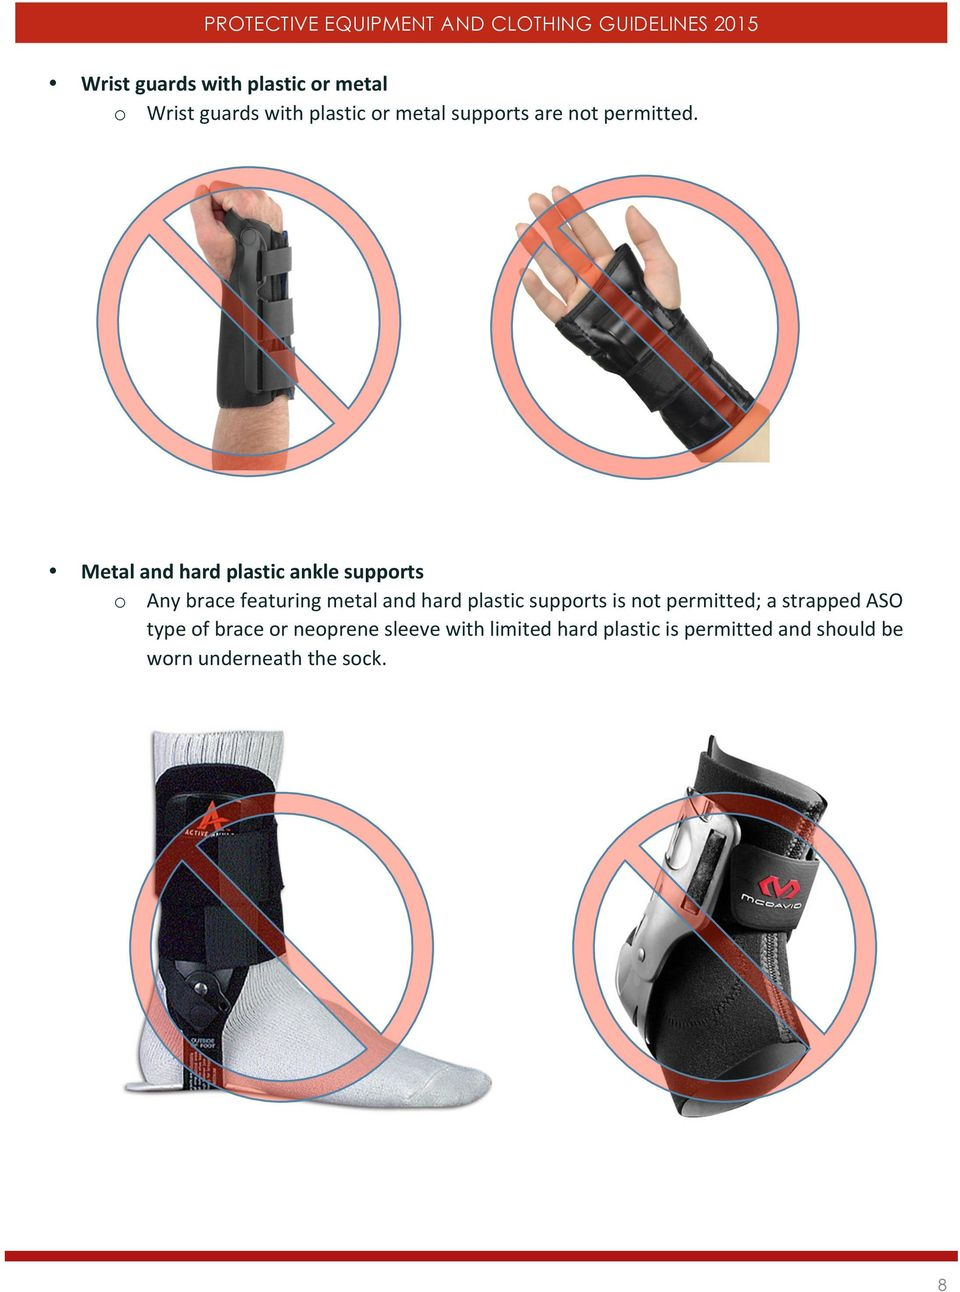 Metal and hard plastic ankle supports o Any brace featuring metal and hard plastic